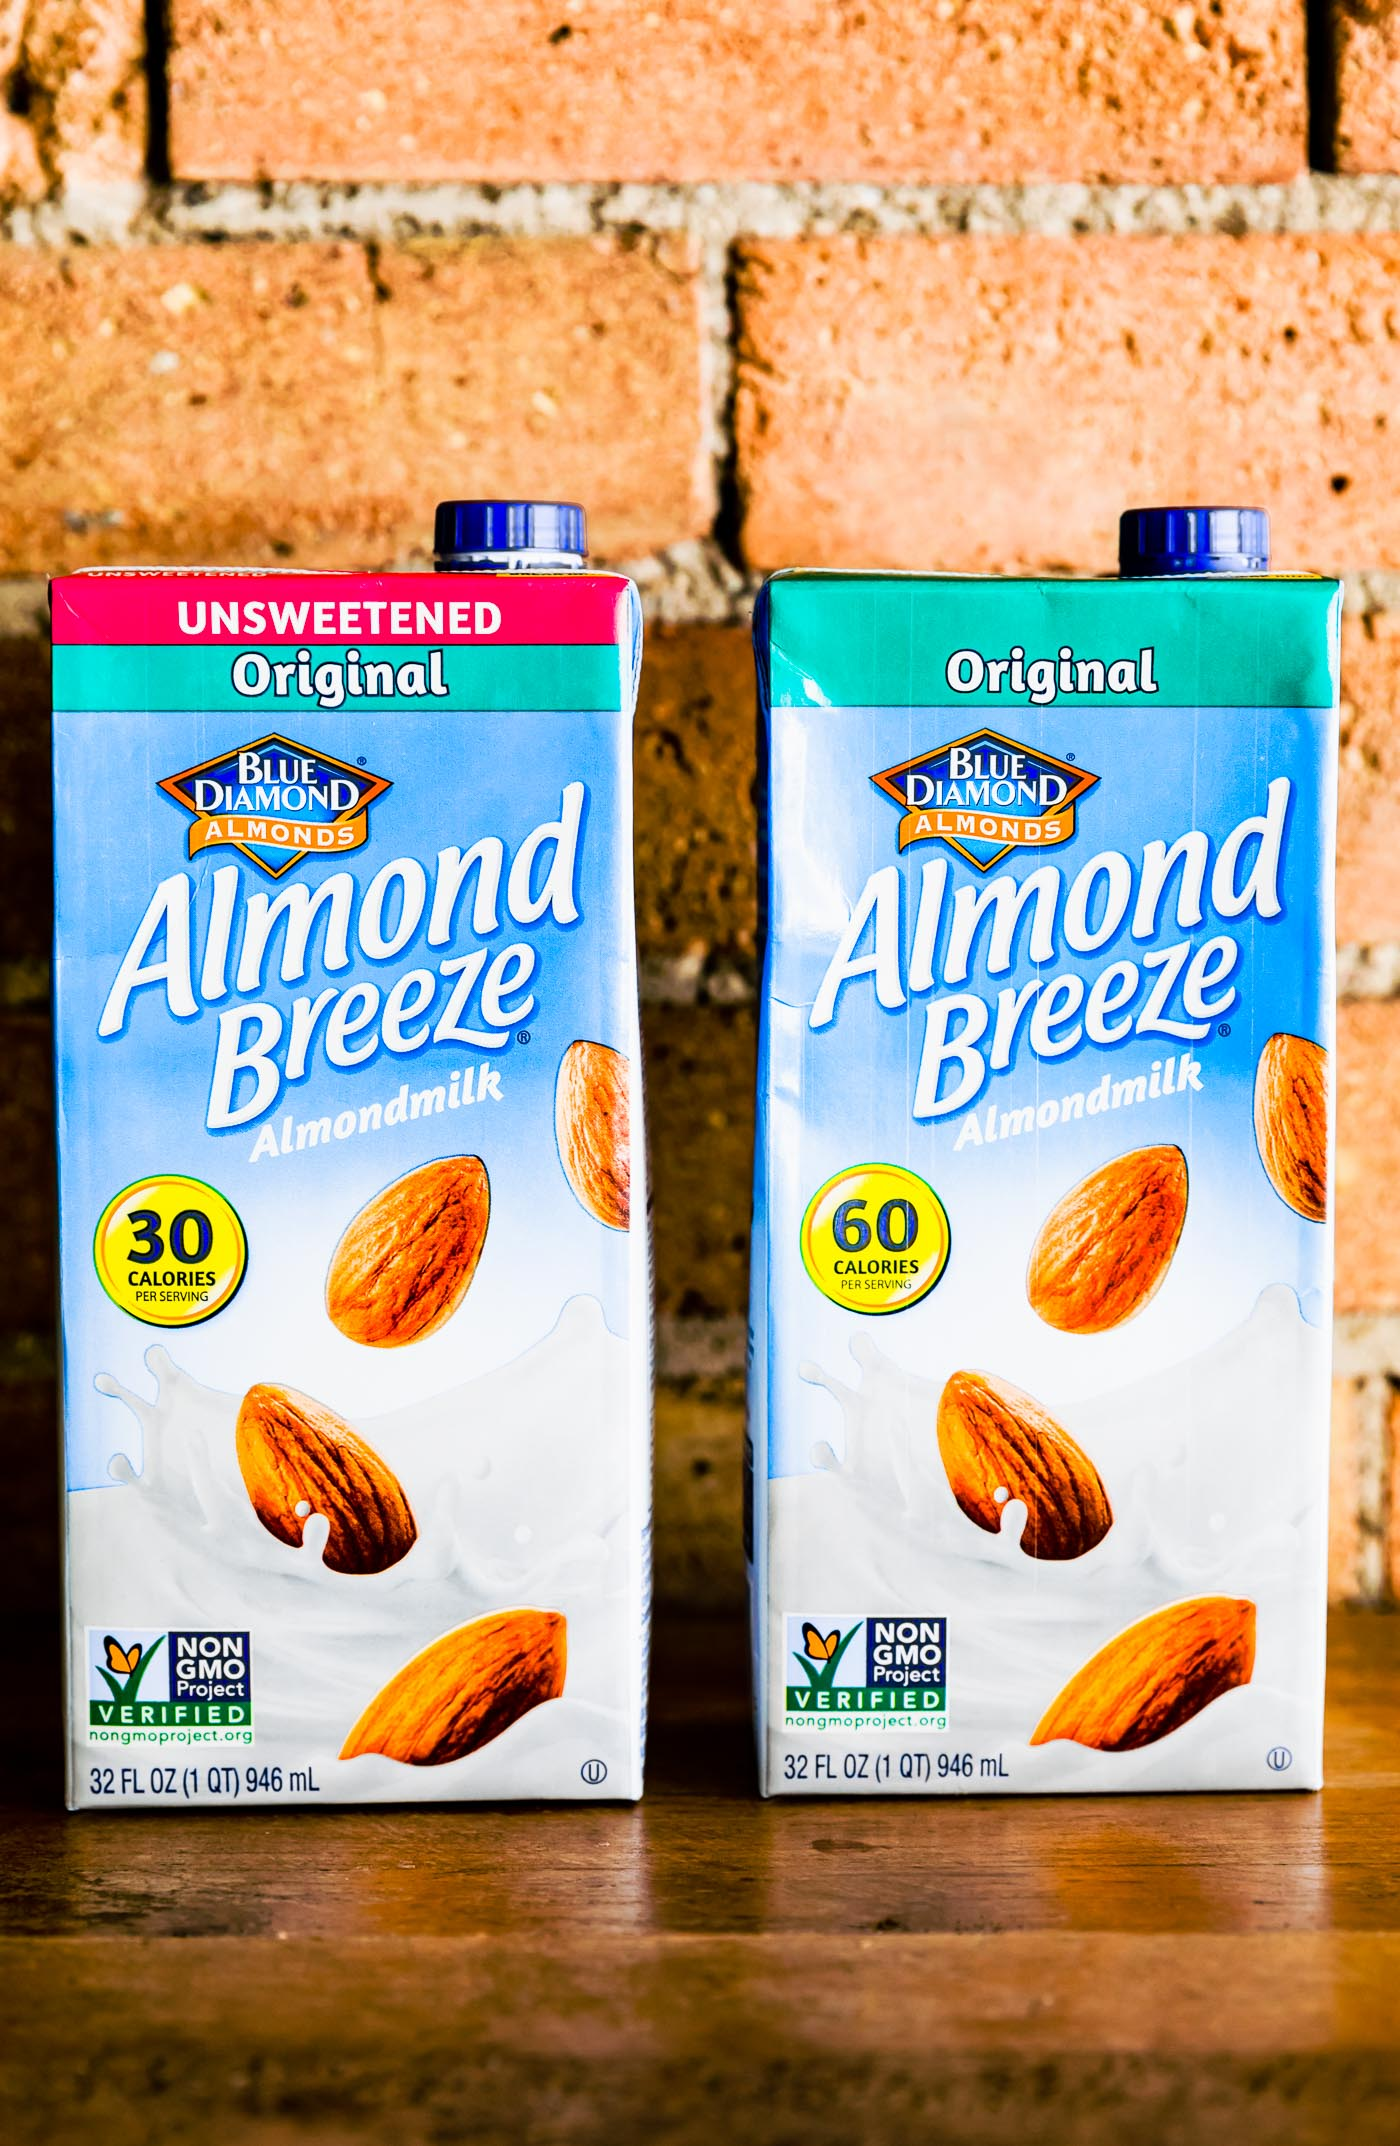 5 Recipes With Shelf Stable Almond Milk A Must Have Pantry Staple Diamond Choco Fresh 946 Ml You Know For Those Important Moments When Run Out Of Refrigerated And Are Dying To Make Smoothie Or Bake Something Thats Vegan